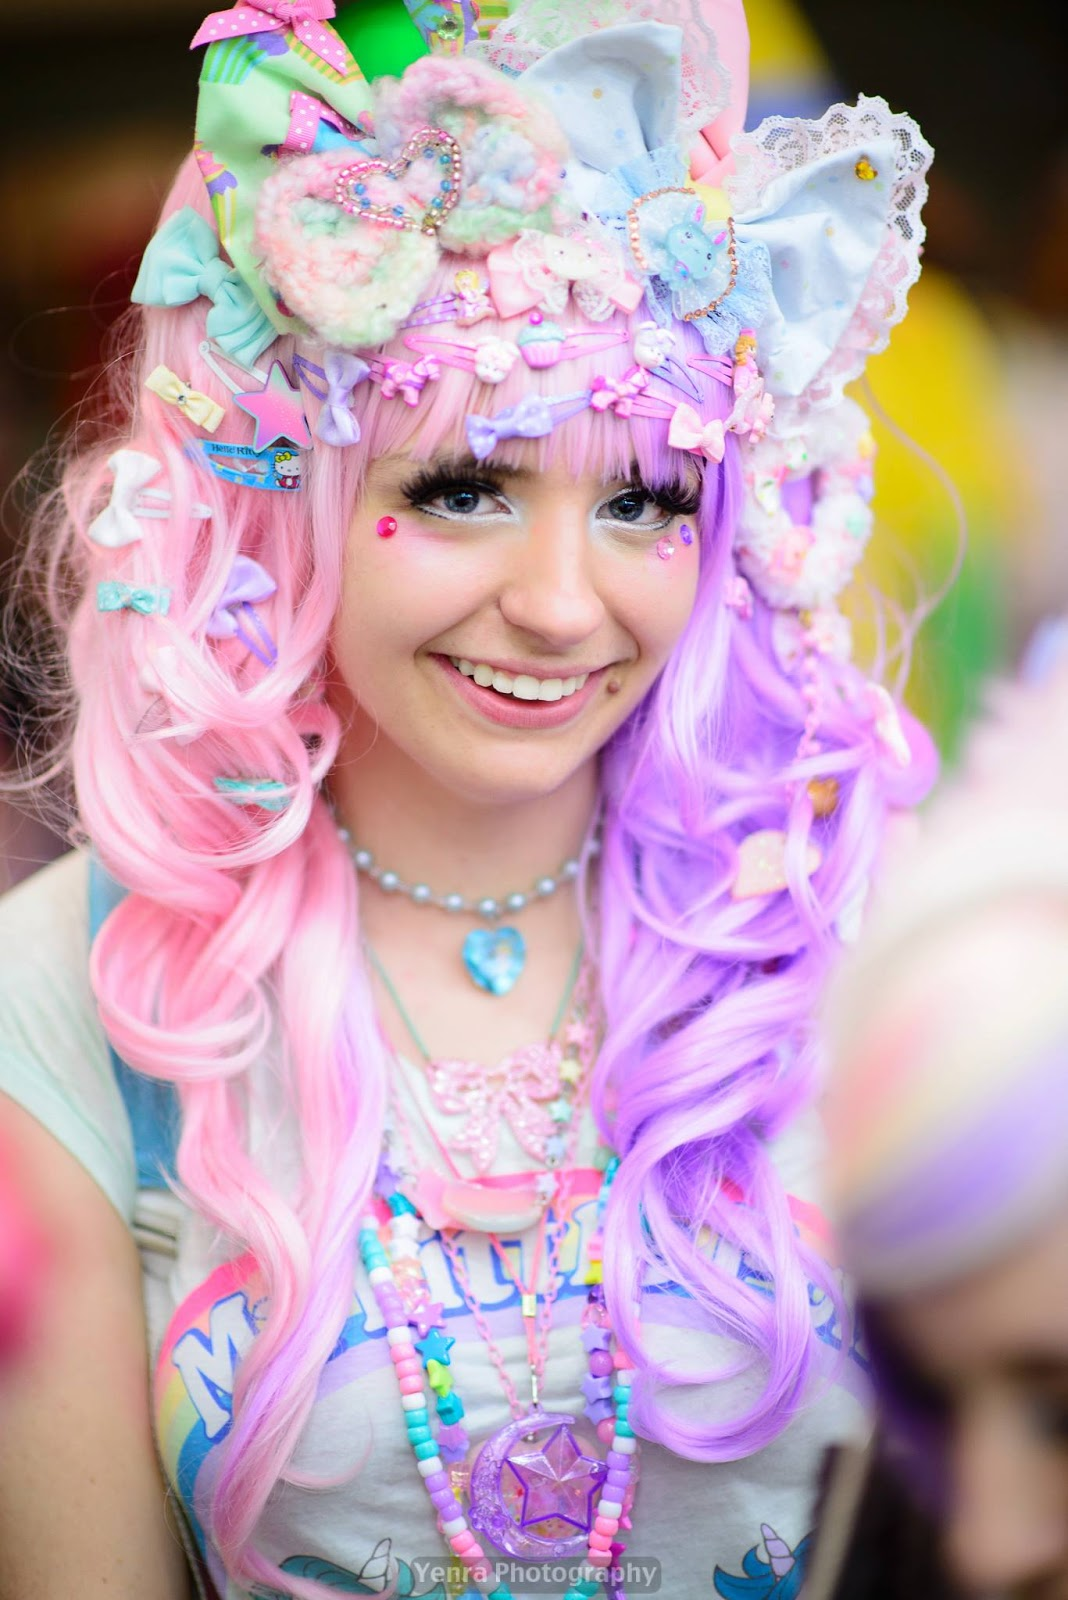 Decora Kawaii Interview Time Tumblr Star Mahou Prince Kawaii B